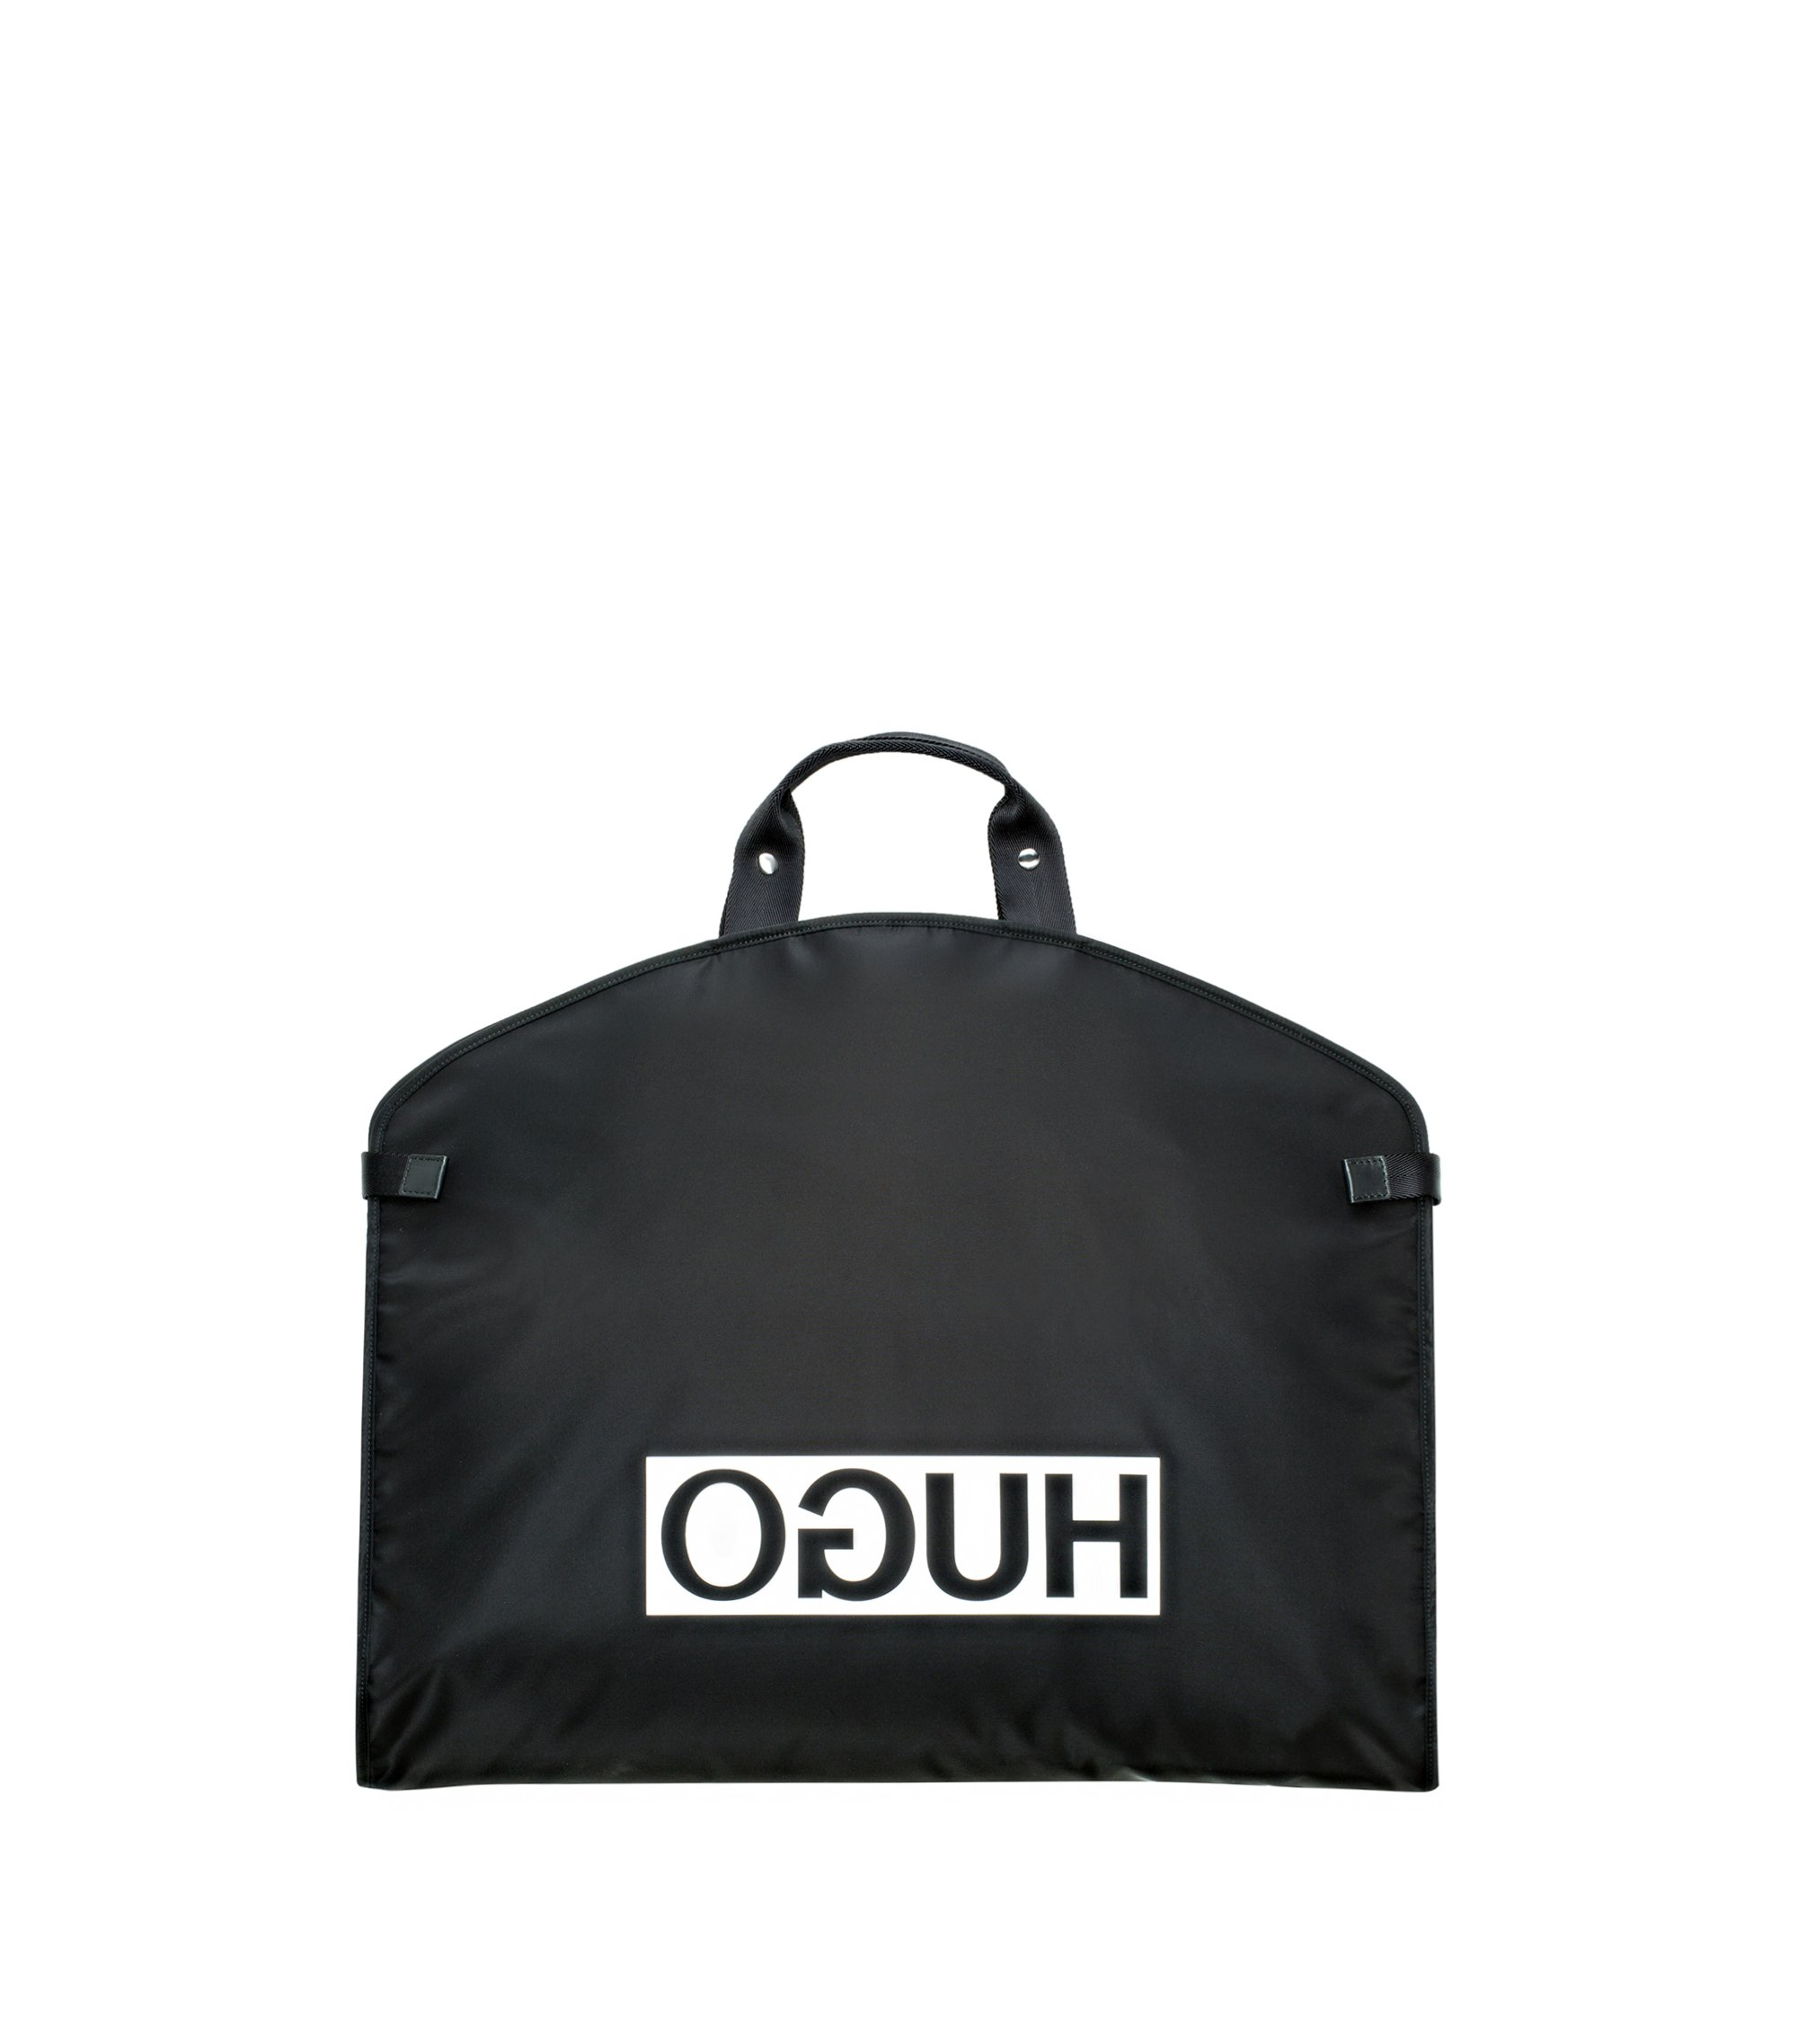 Reverse-logo garment bag in nylon gabardine, Black